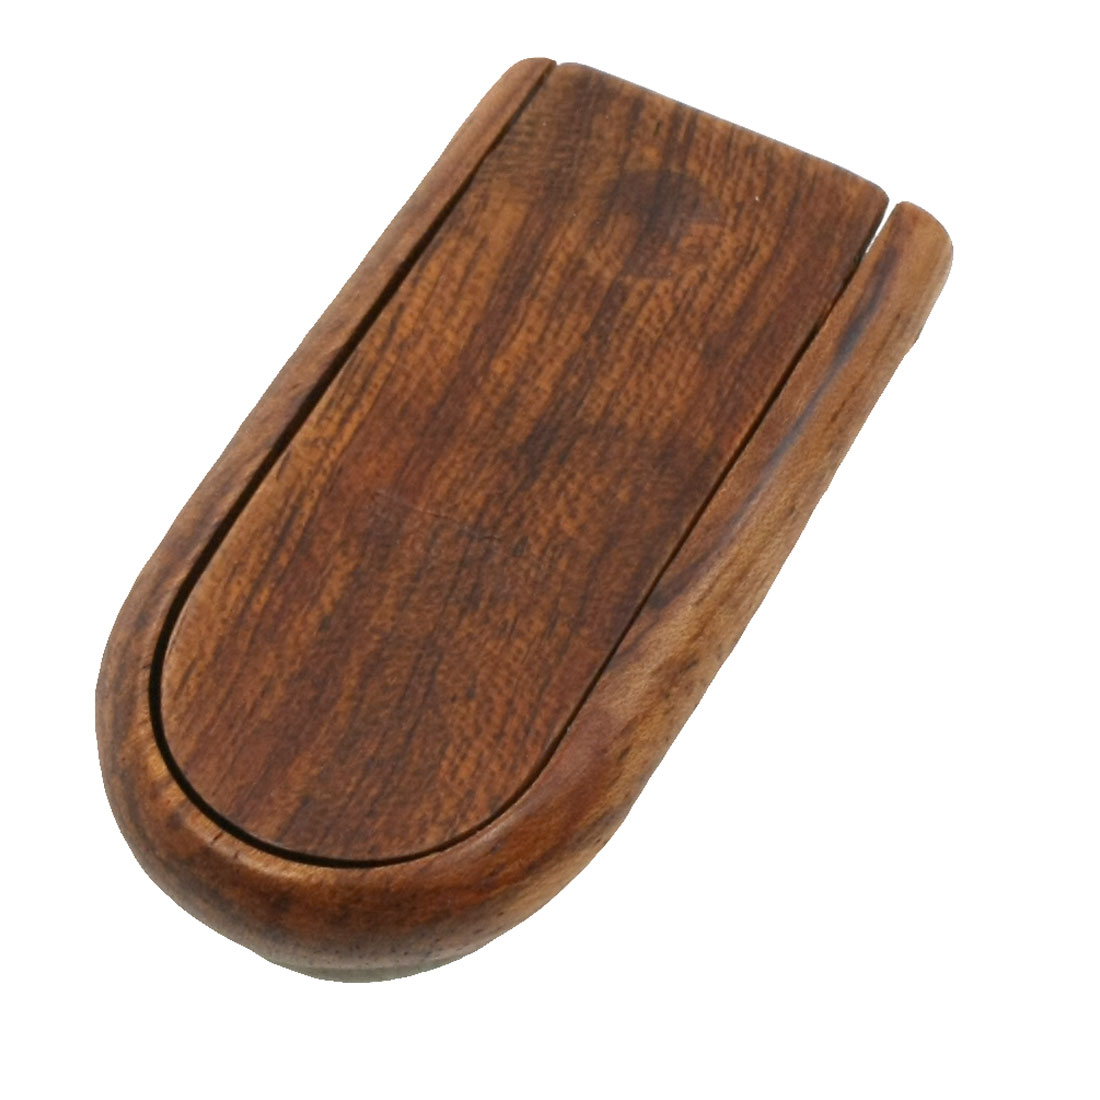 Wooden Simple Practical Foldable Folding Smoking Cigarette Stand Rack Holder